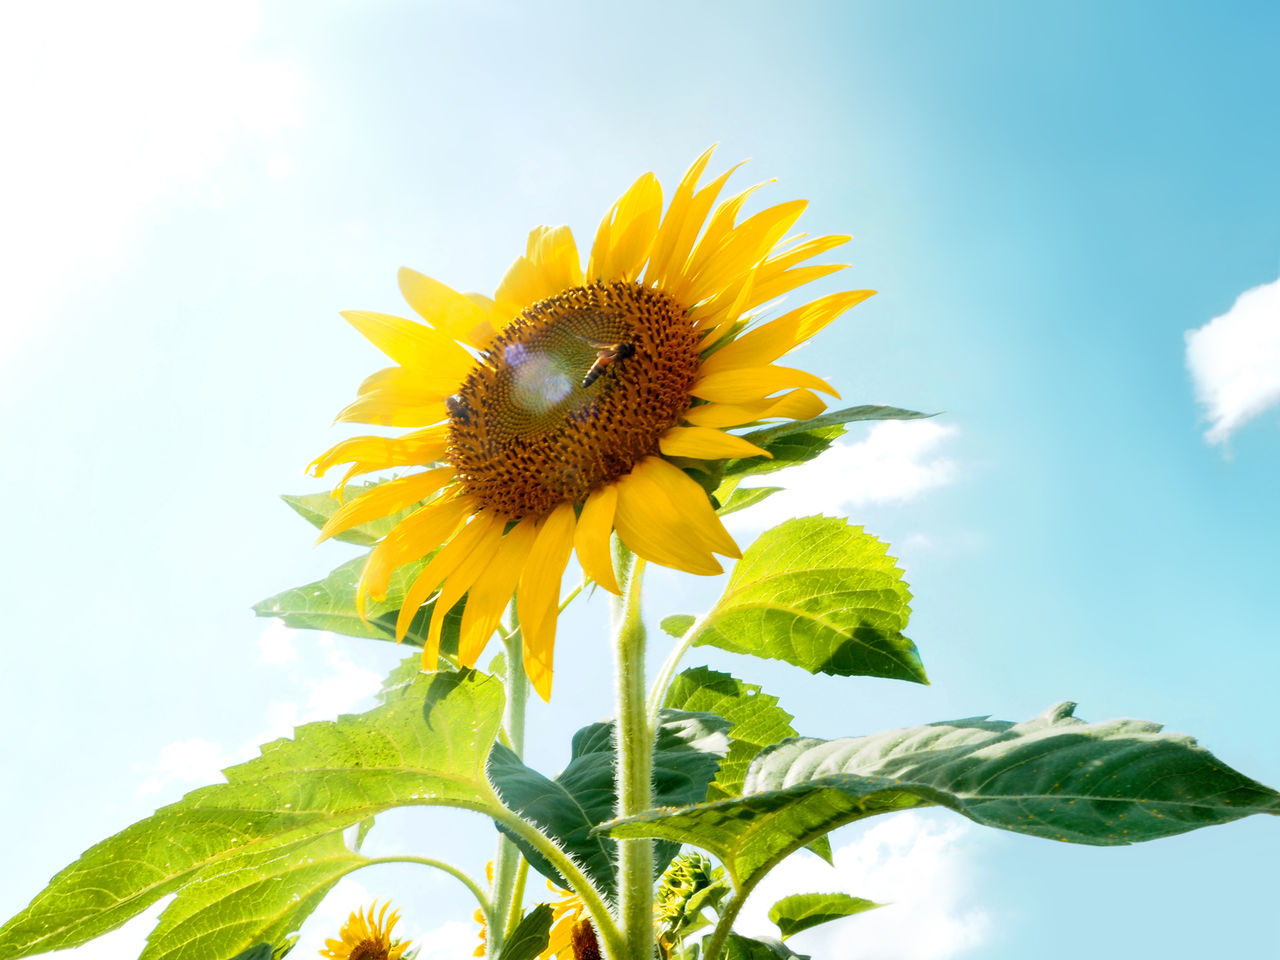 🐝Sunny Day🐝 Sunflower Yellow Selective Focus Blossom Blooming Beauty In Nature Sky Spotted In Thailand Sunny Bee Travel Thailand Botany Close-up Flower Fragility Freshness Growth Leaf Nature Petal Plant Pollen Softness Showcase: December